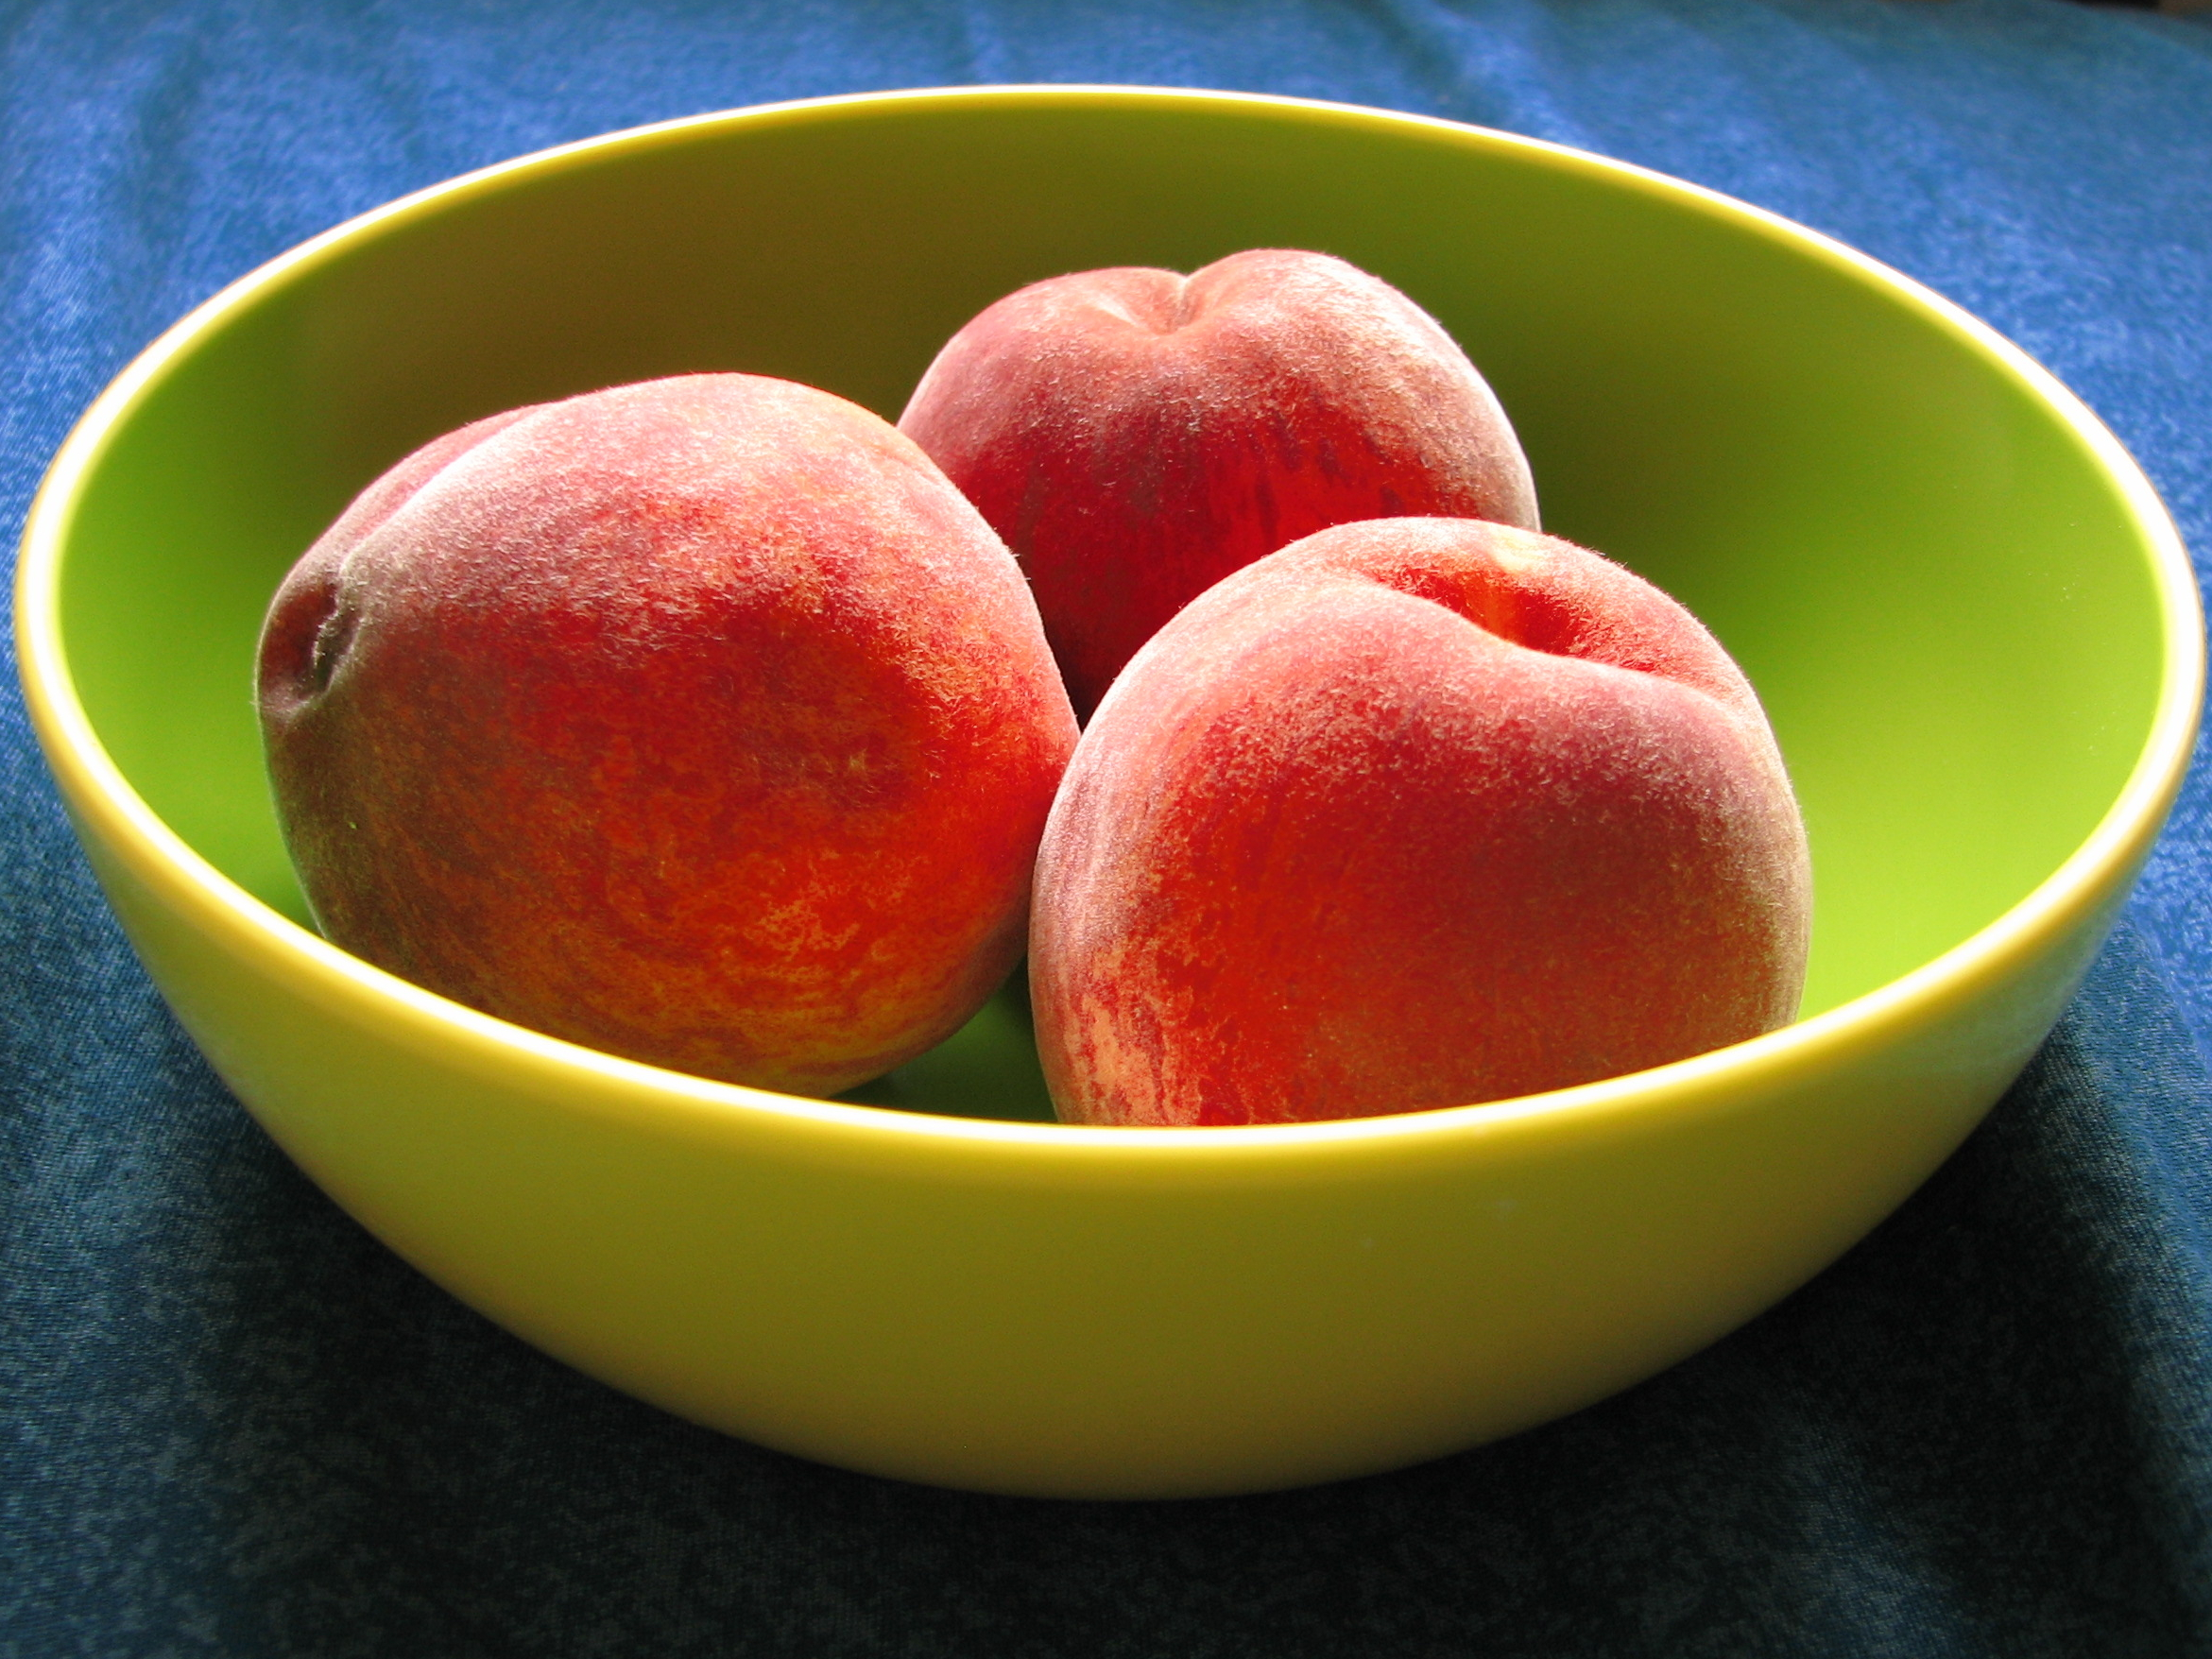 Those peaches have been colour enhanced to make you disappointed if you really see them.